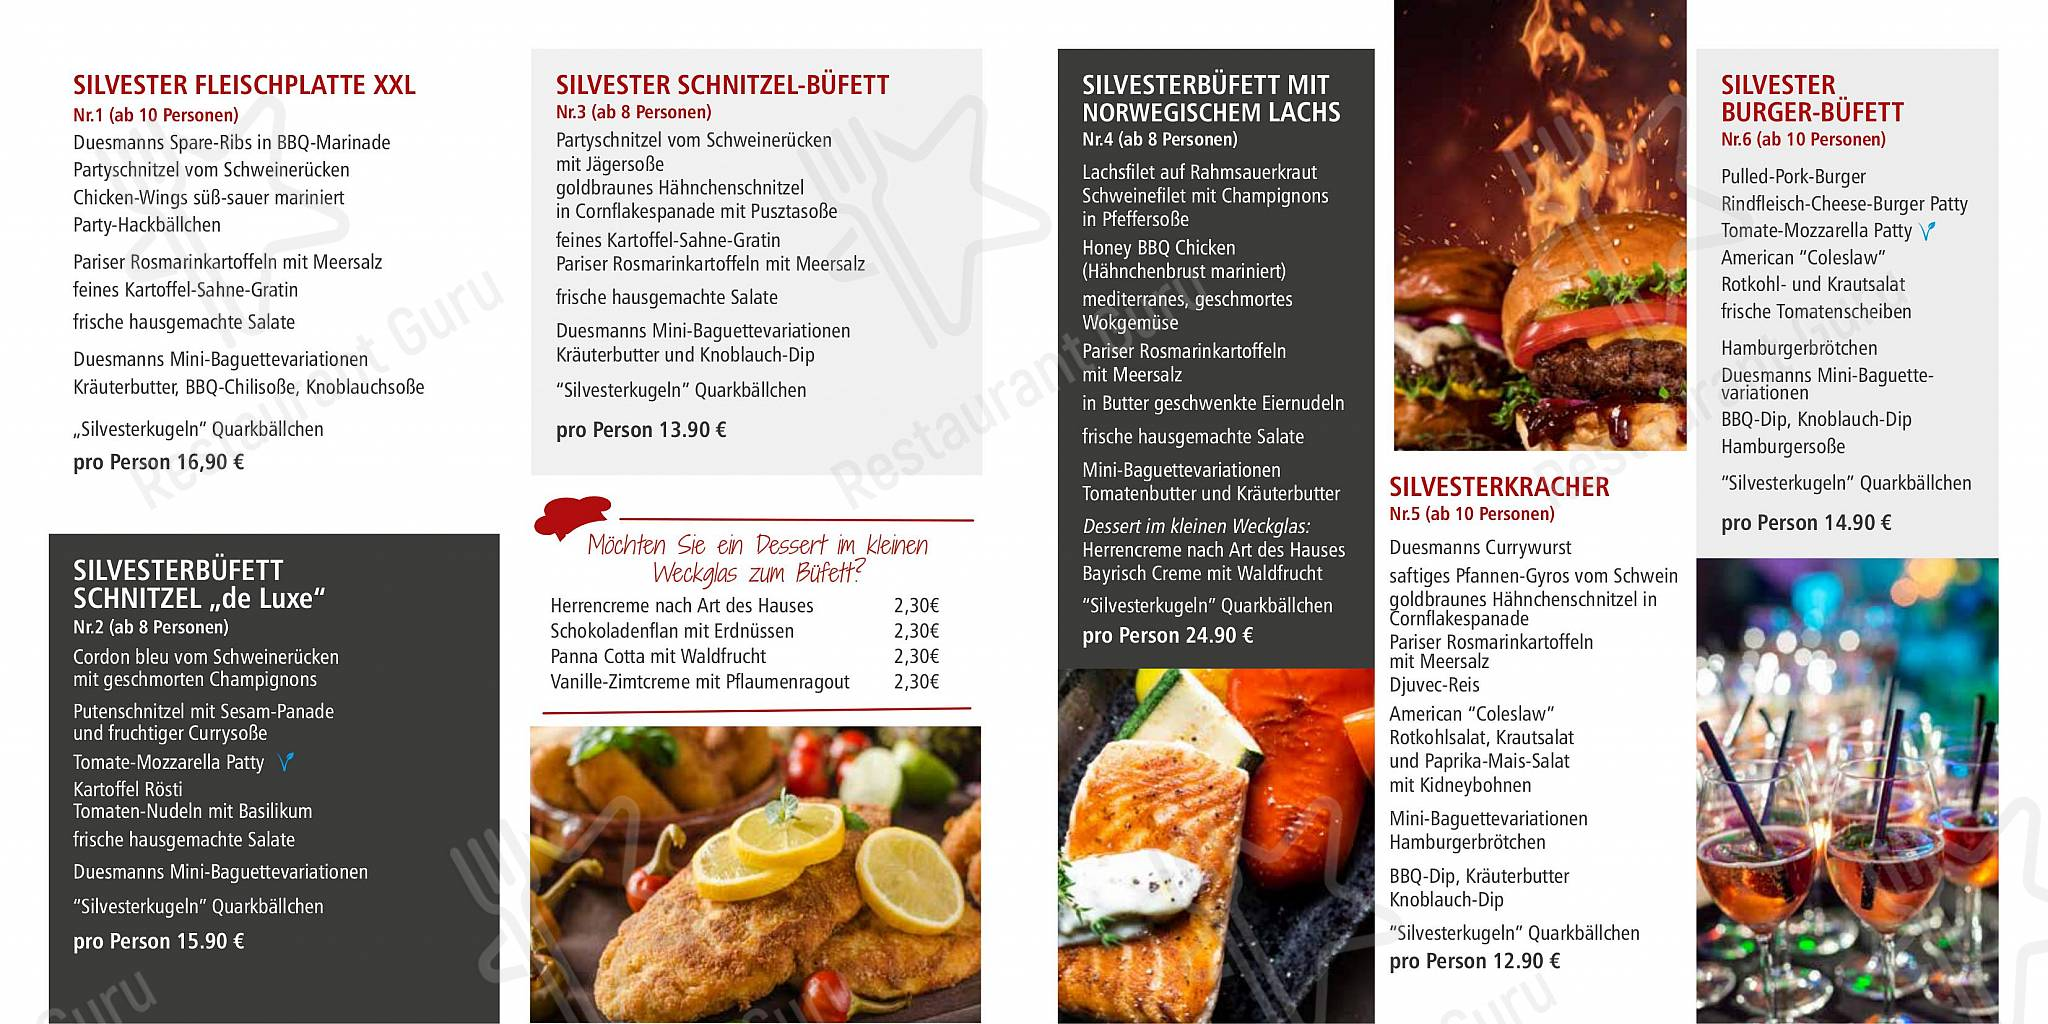 Menu At Duesmann Cafe Gronau